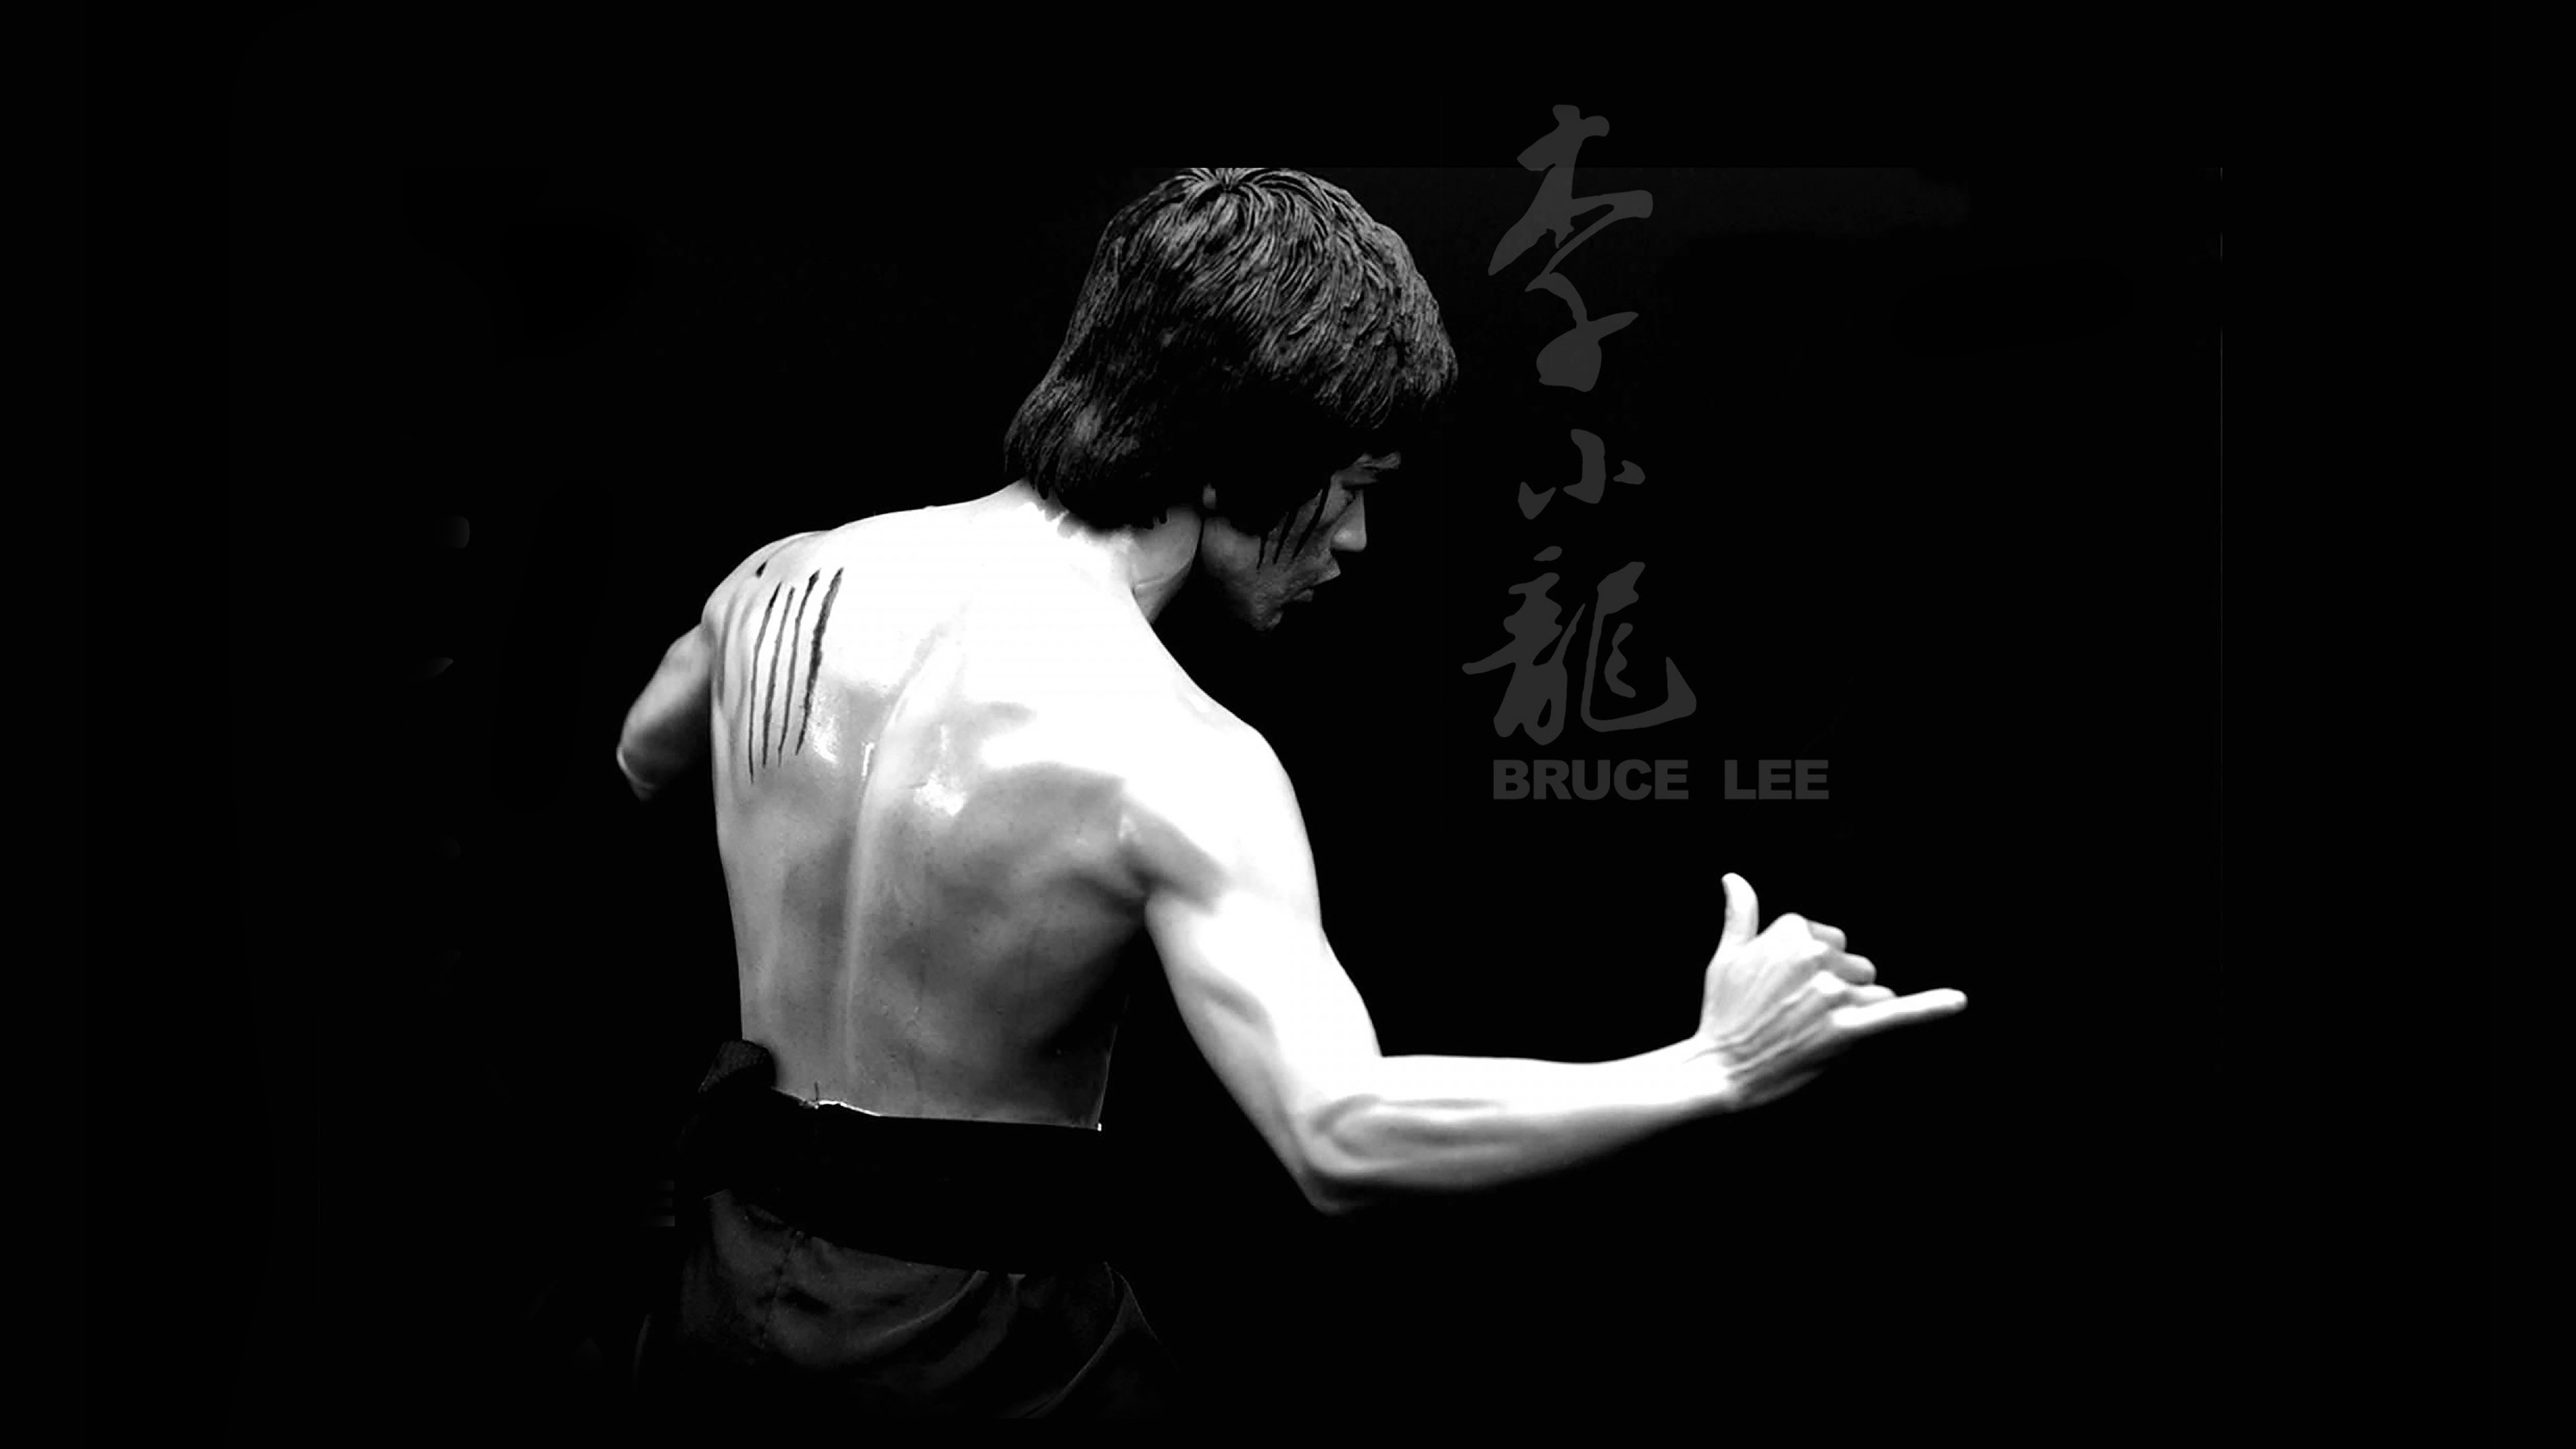 Fall Wallpaper Hd 1920x1080 Hd64 Bruce Lee Sports Actor Celebrity Dark Papers Co